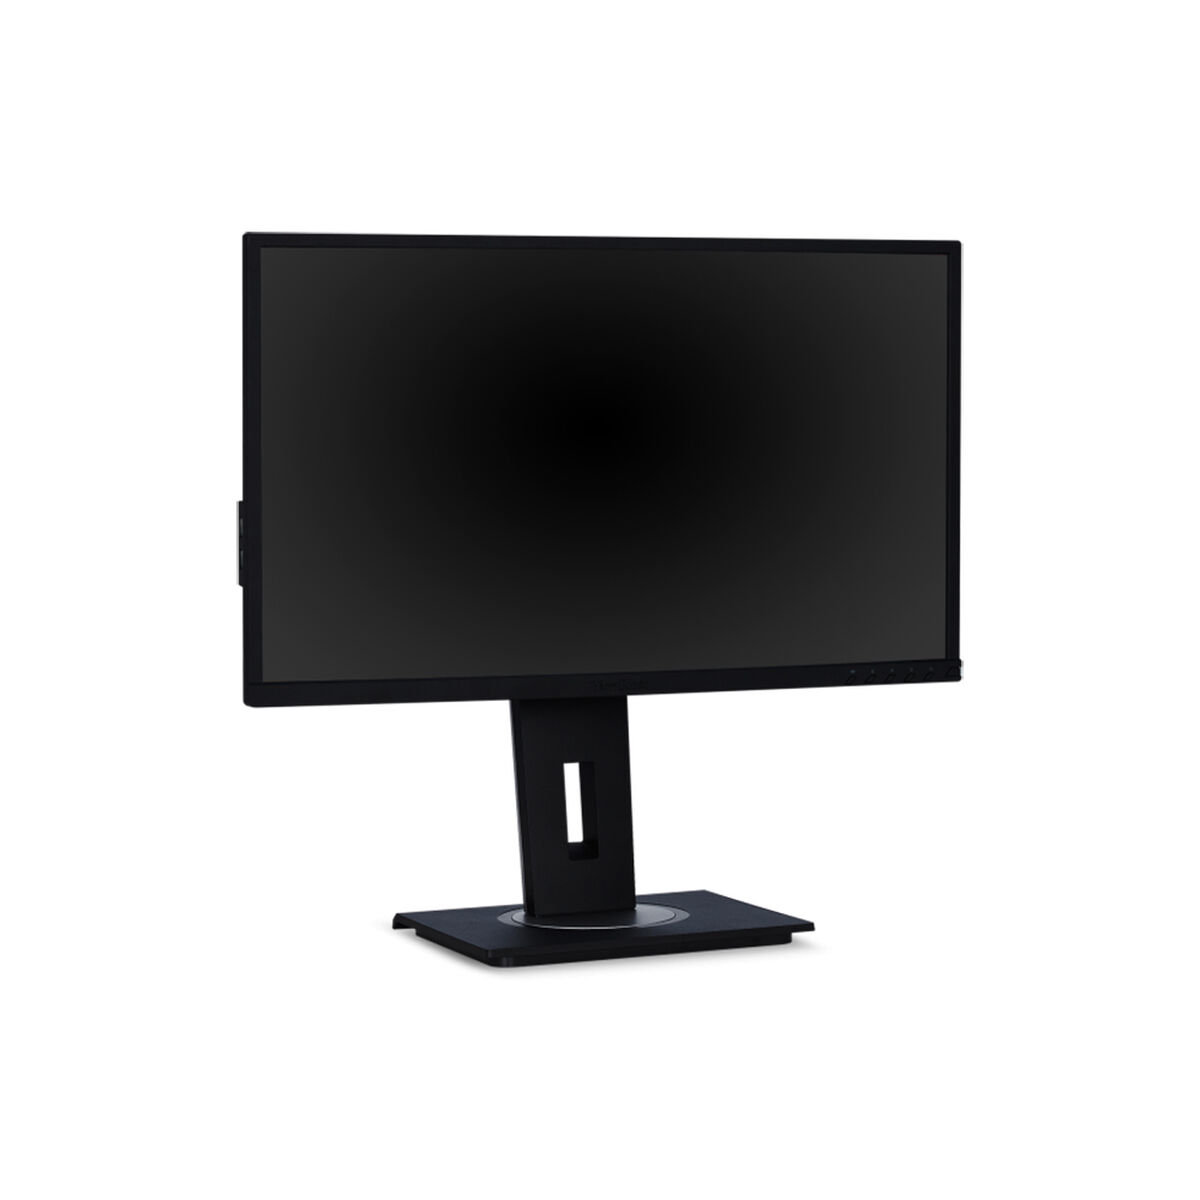 "Monitor 22"" Viewsonic VG2248 HD"